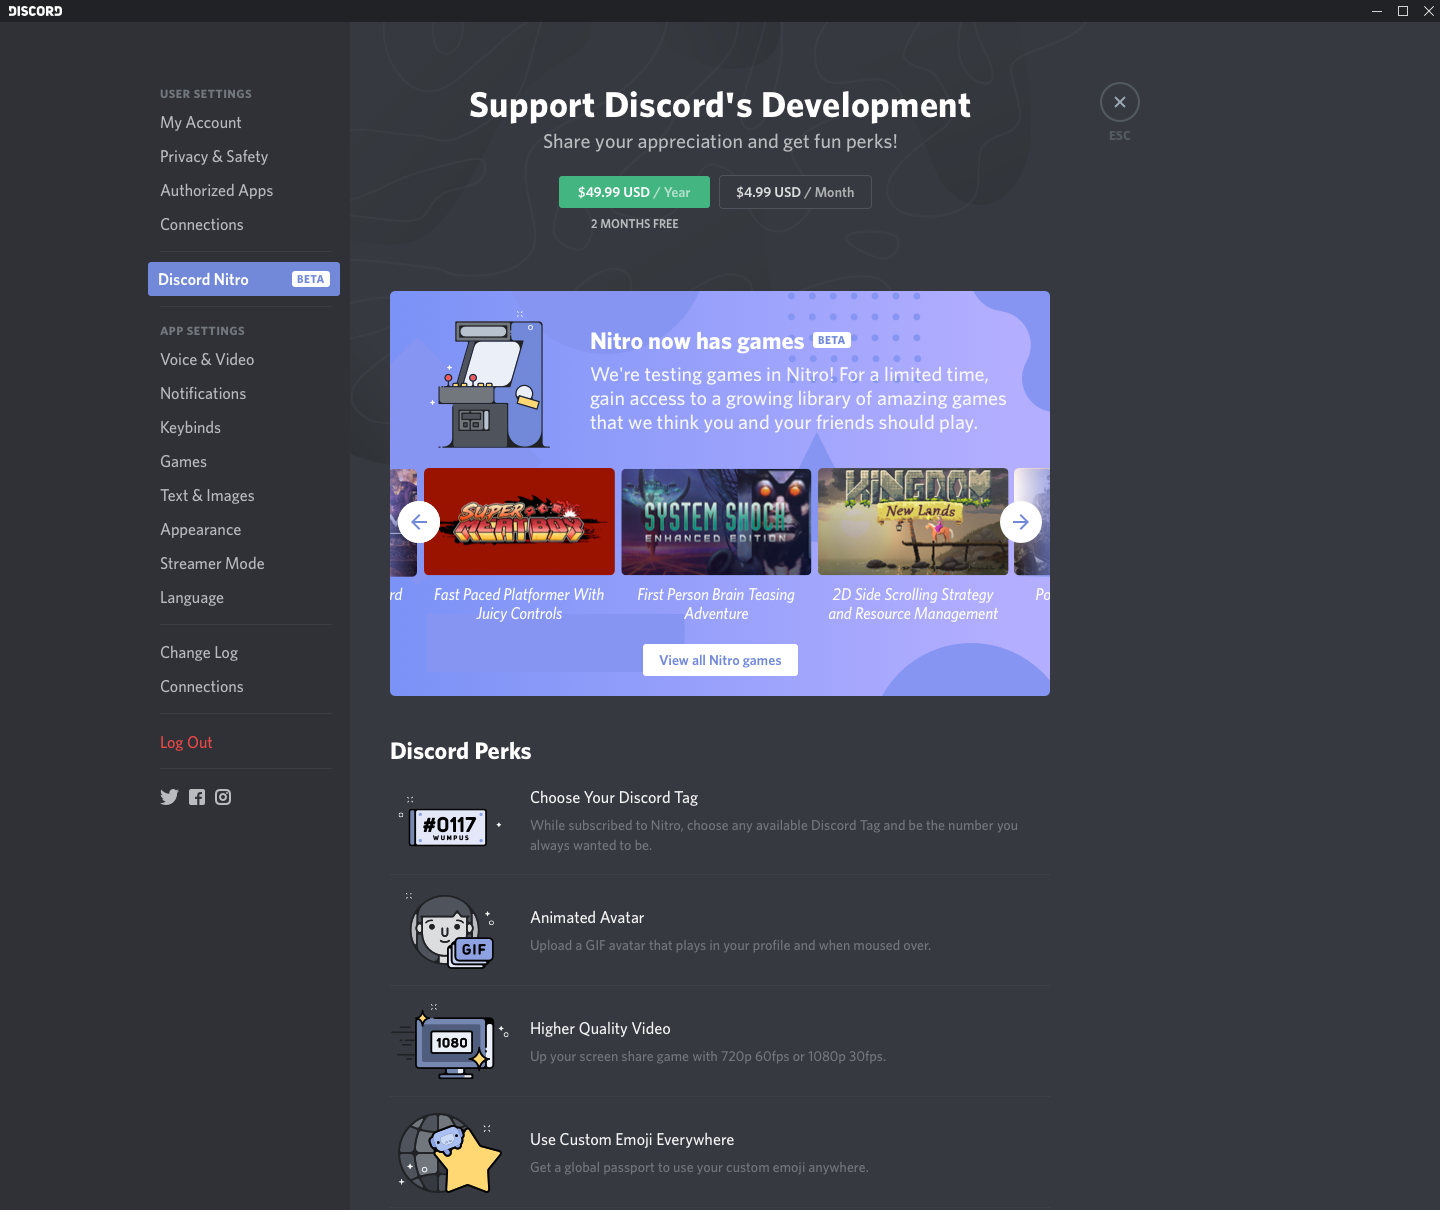 Discord Store is the chat platform's game storefront meant